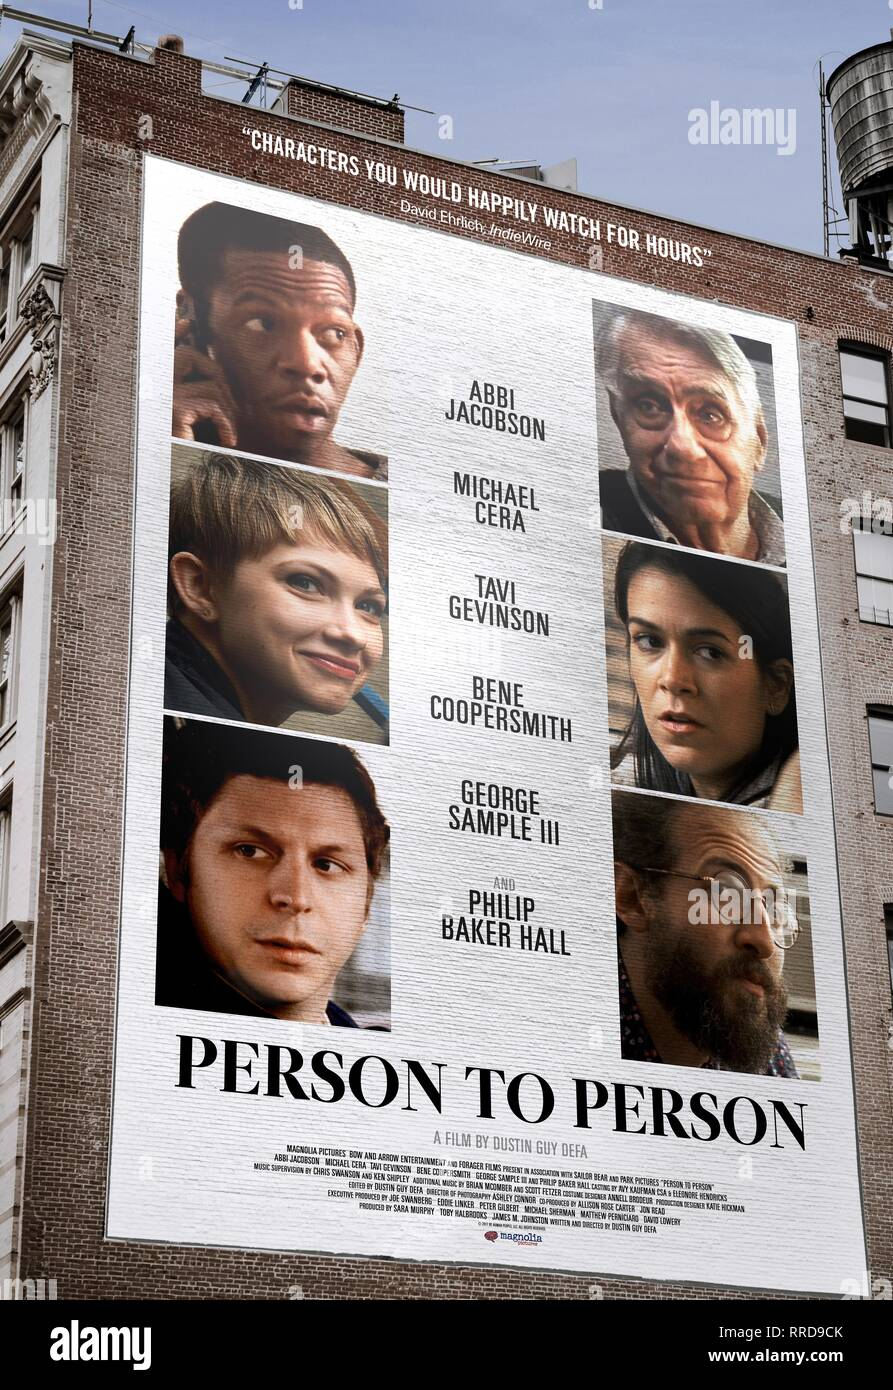 PERSON TO PERSON, MOVIE POSTER, 2017 - Stock Image